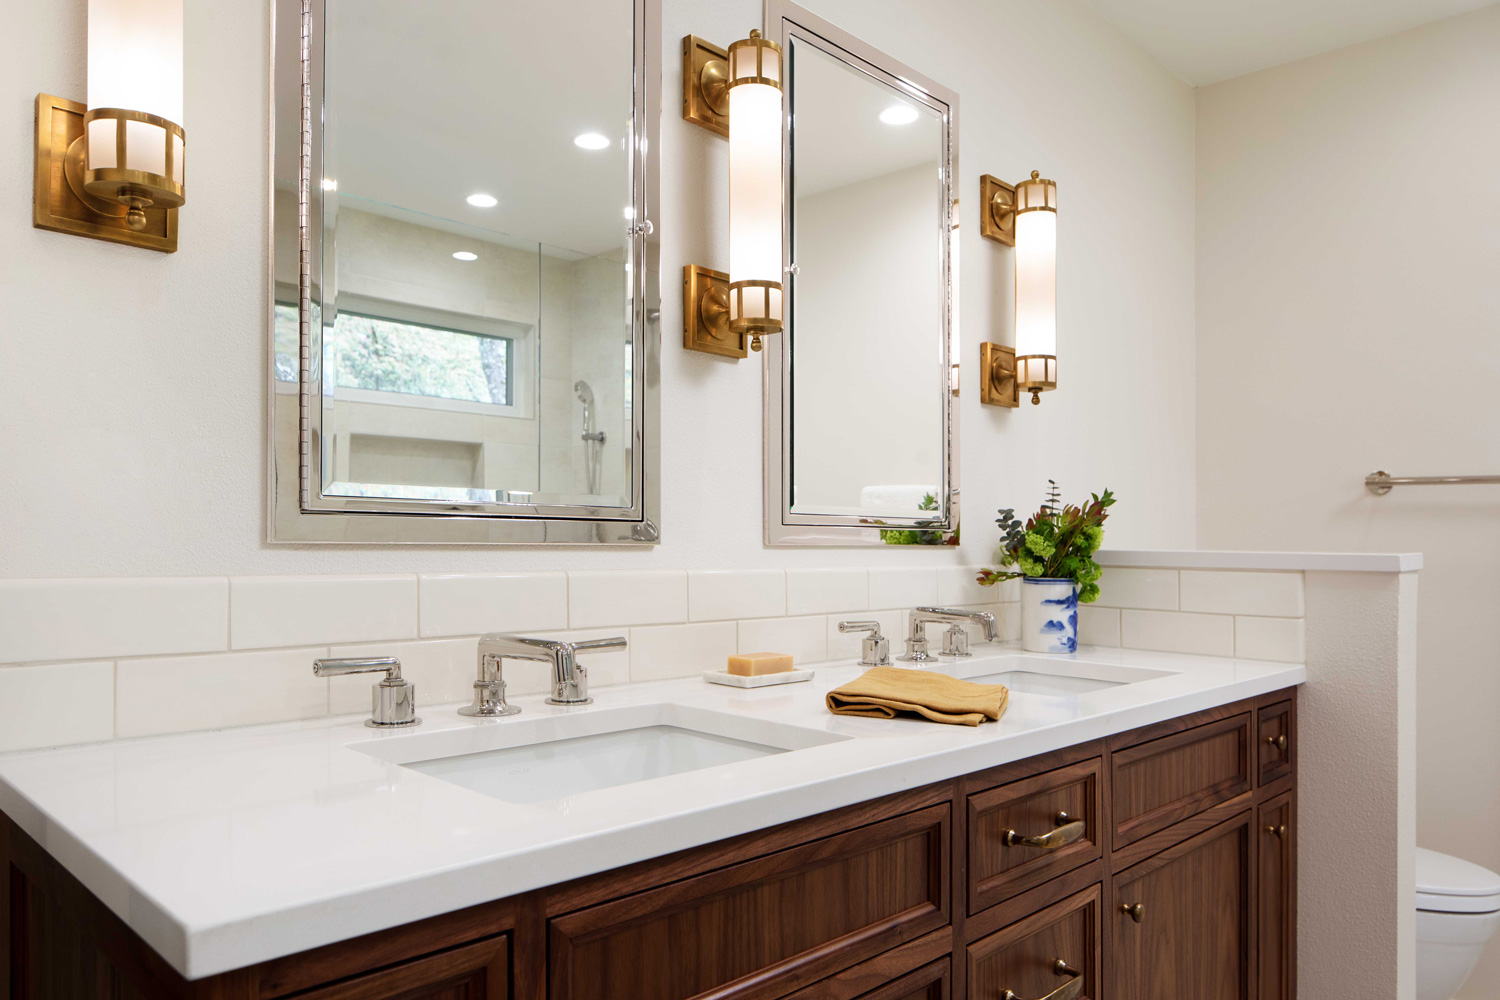 skyland-bathroom-twin-sink-remodel.jpg